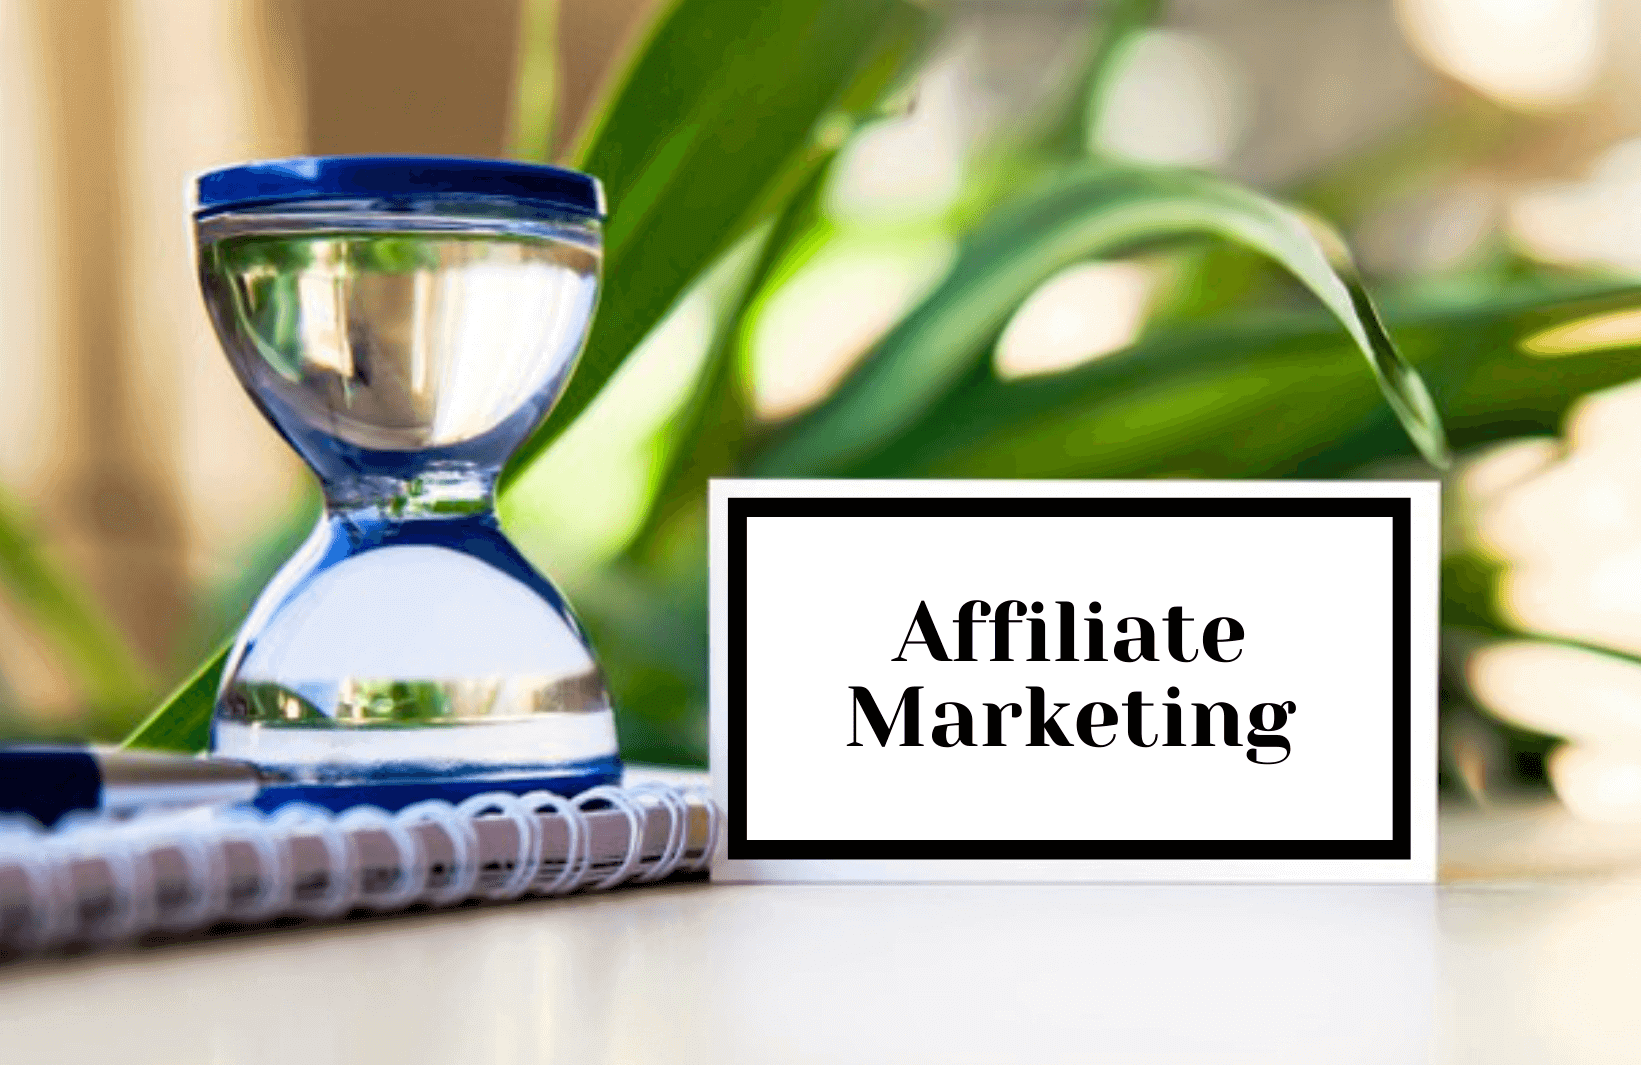 Affiliate Marketing for Beginners: An Overview